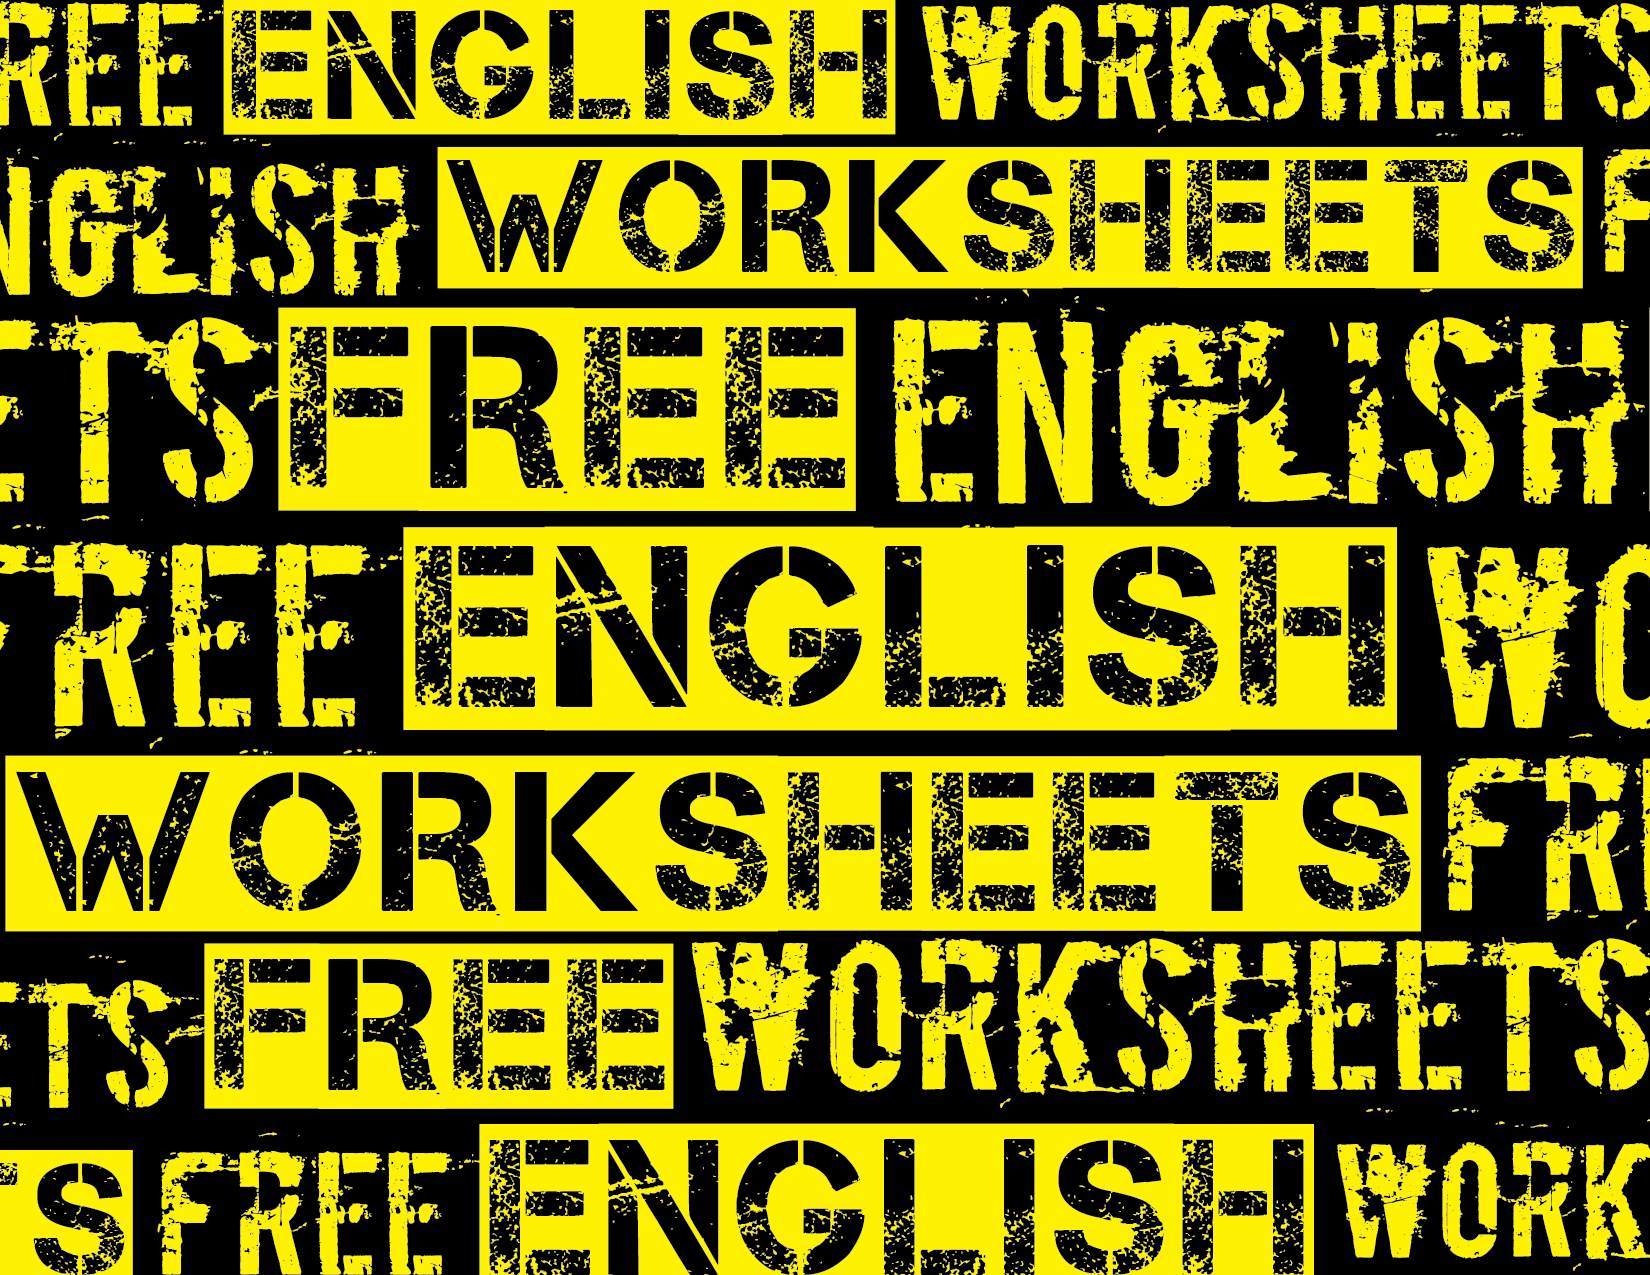 Free English Worksheets - VIEWABLE, DOWNLOADABLE & PRINTABLE PDFS!